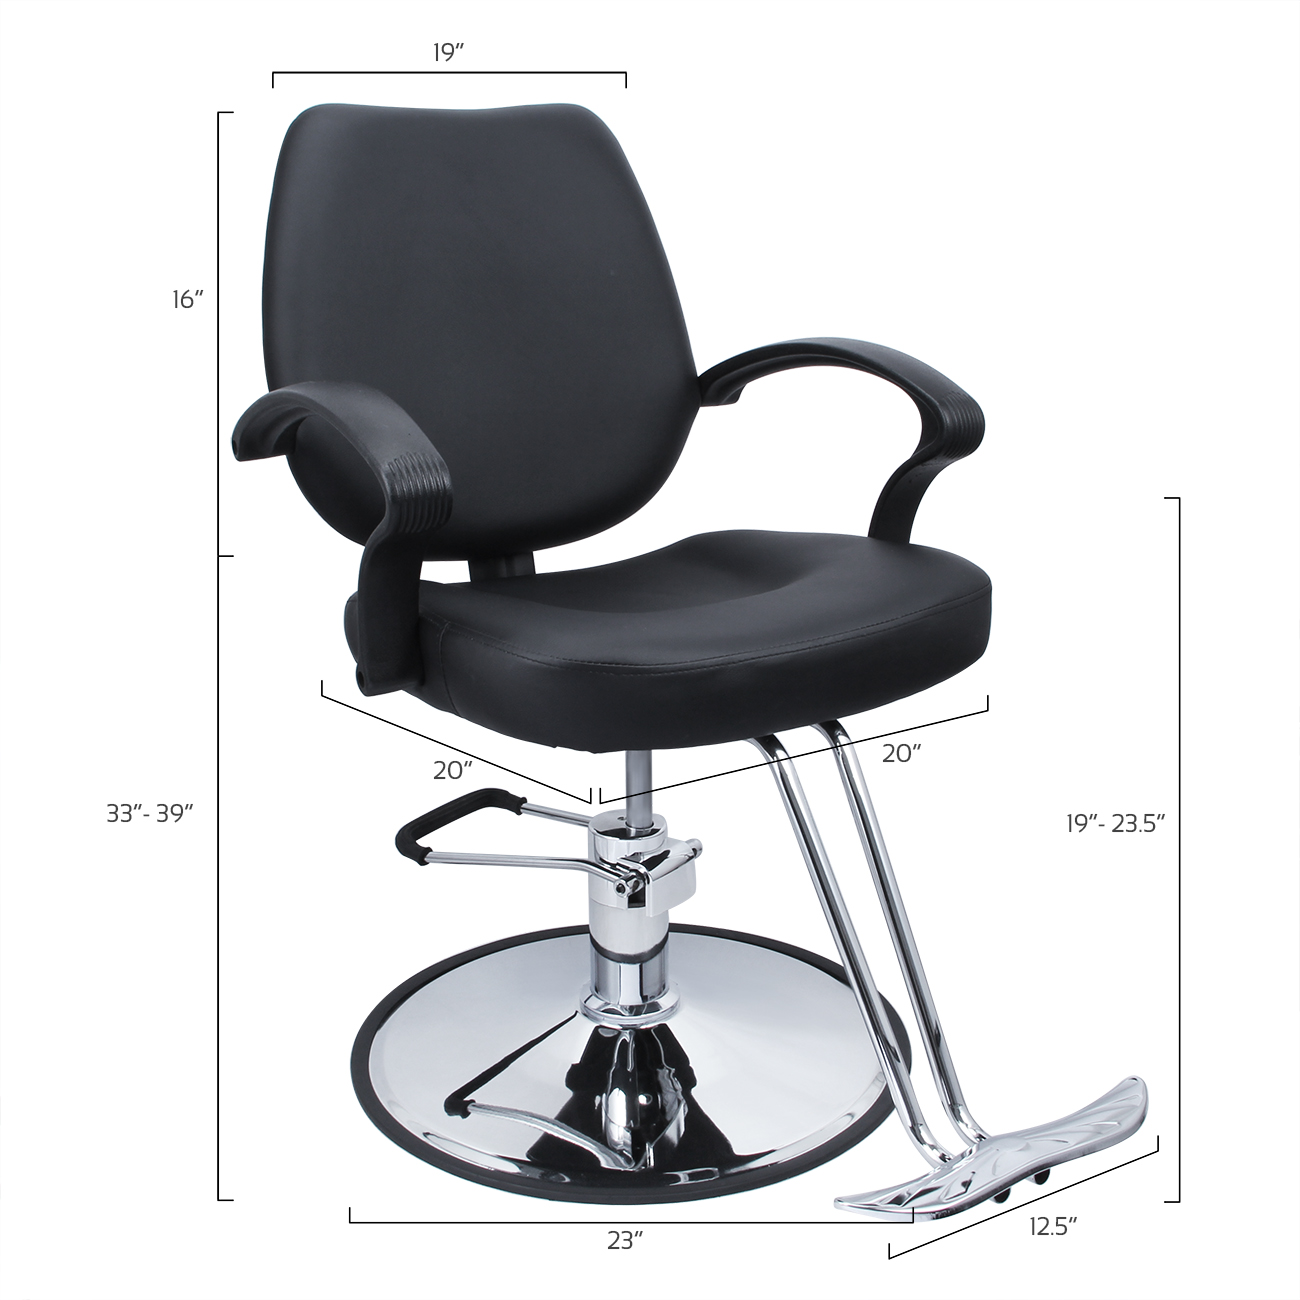 classic hydraulic barber chair salon beauty spa hair styling black w